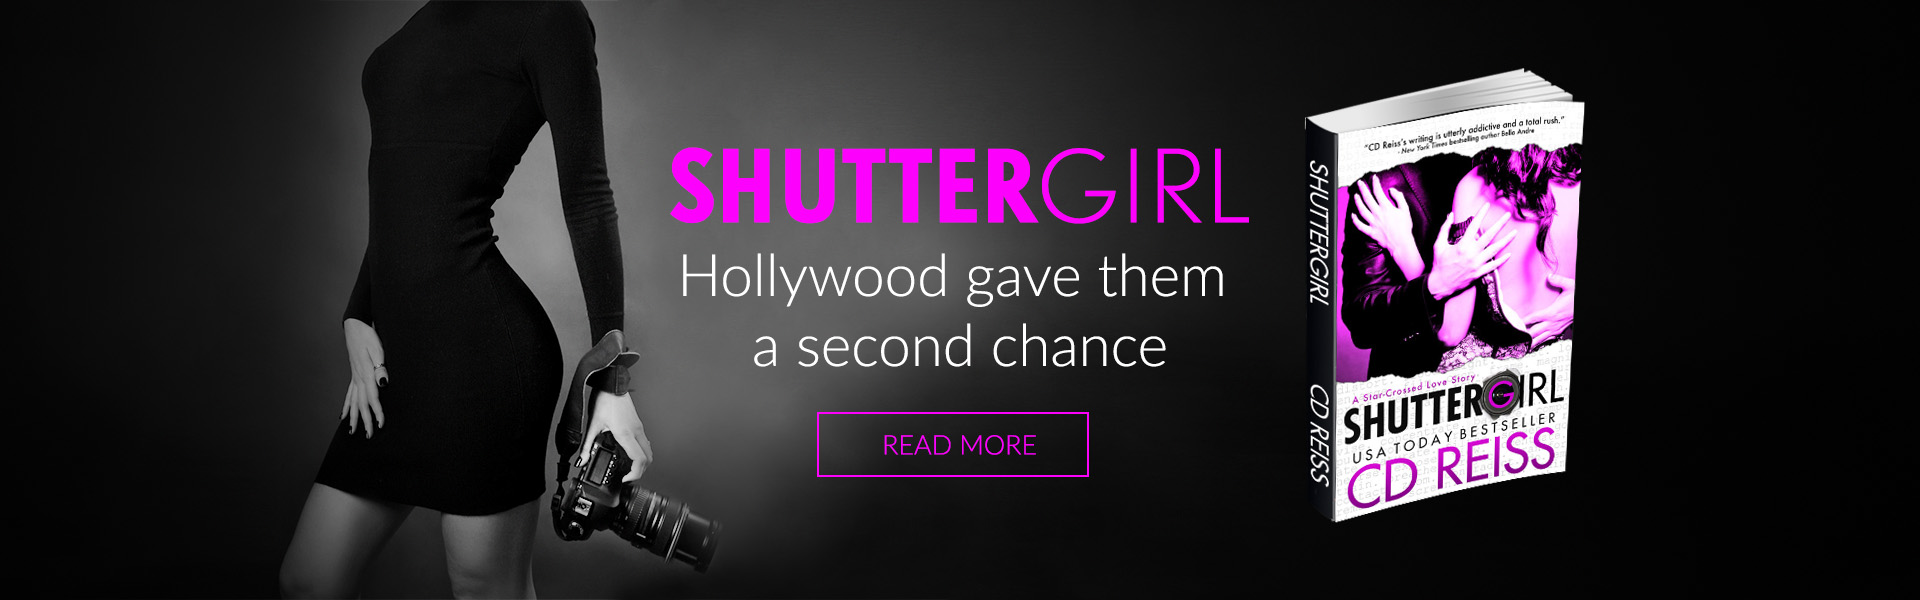 Shuttergirl by USA Today Bestselling Romance Author CD Reiss